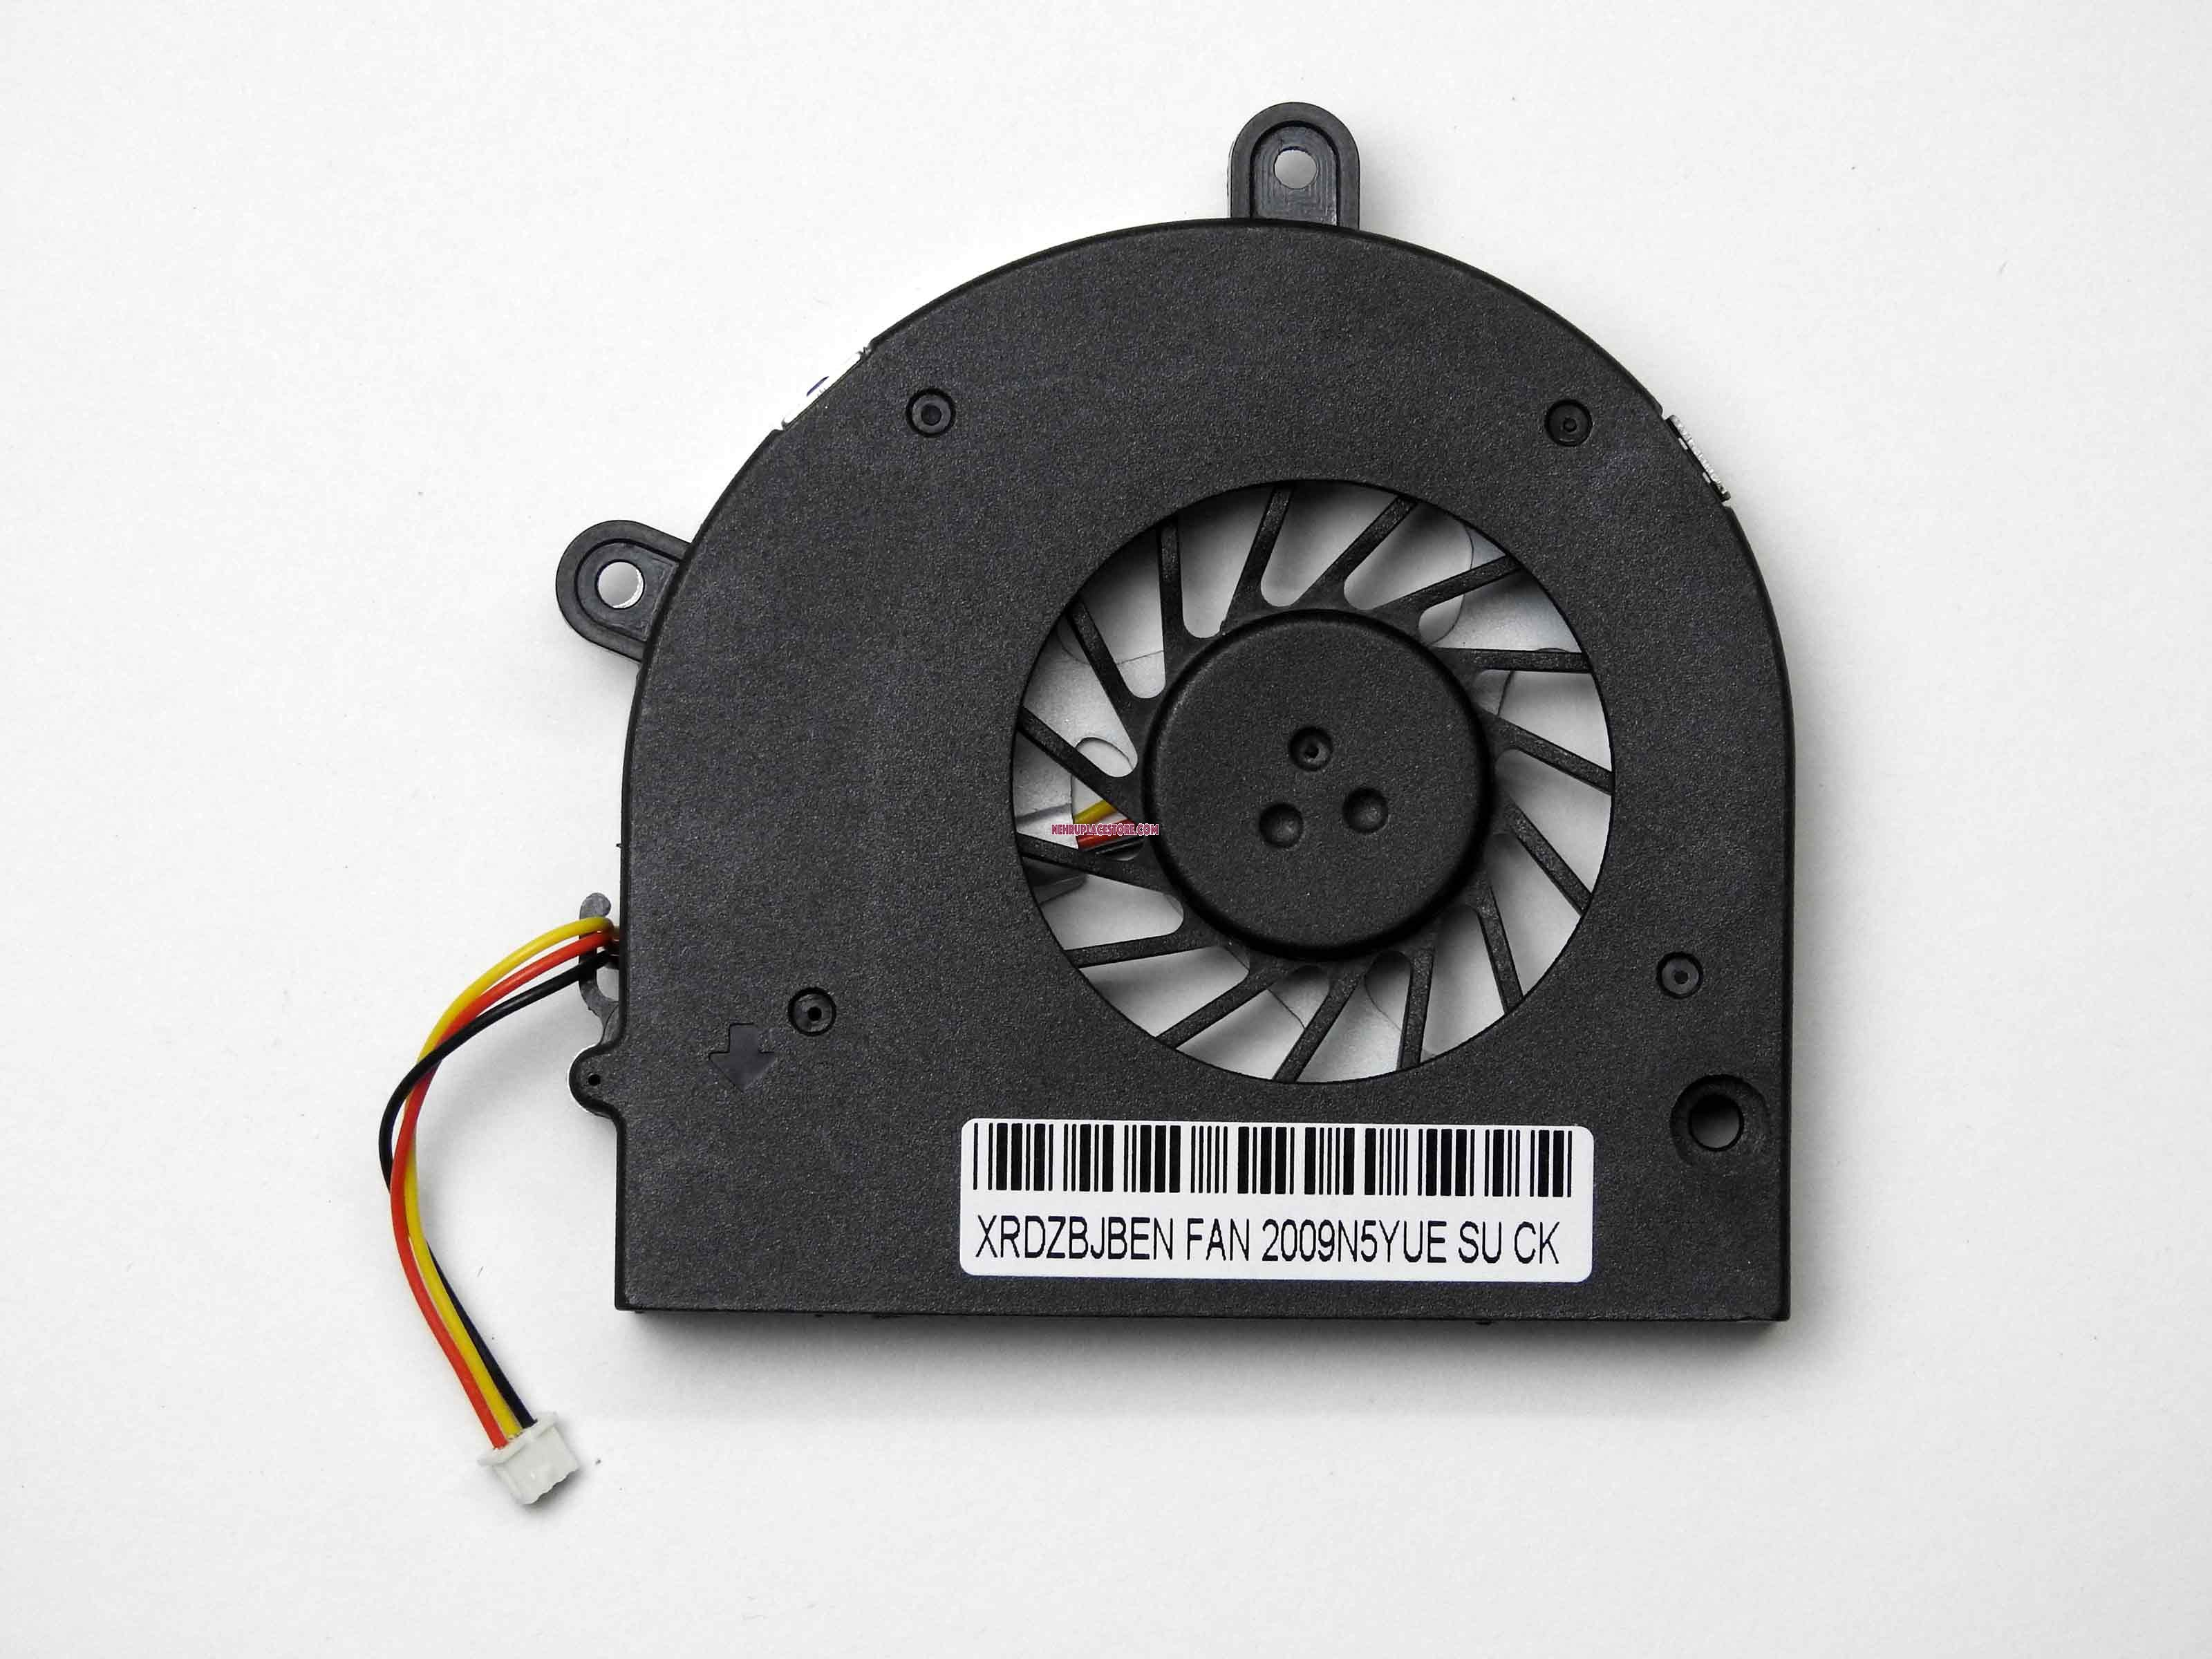 Toshiba Satellite A660 A665 C660 C665 P750 Laptop Cpu Cooling Fan For Wiring Diagram